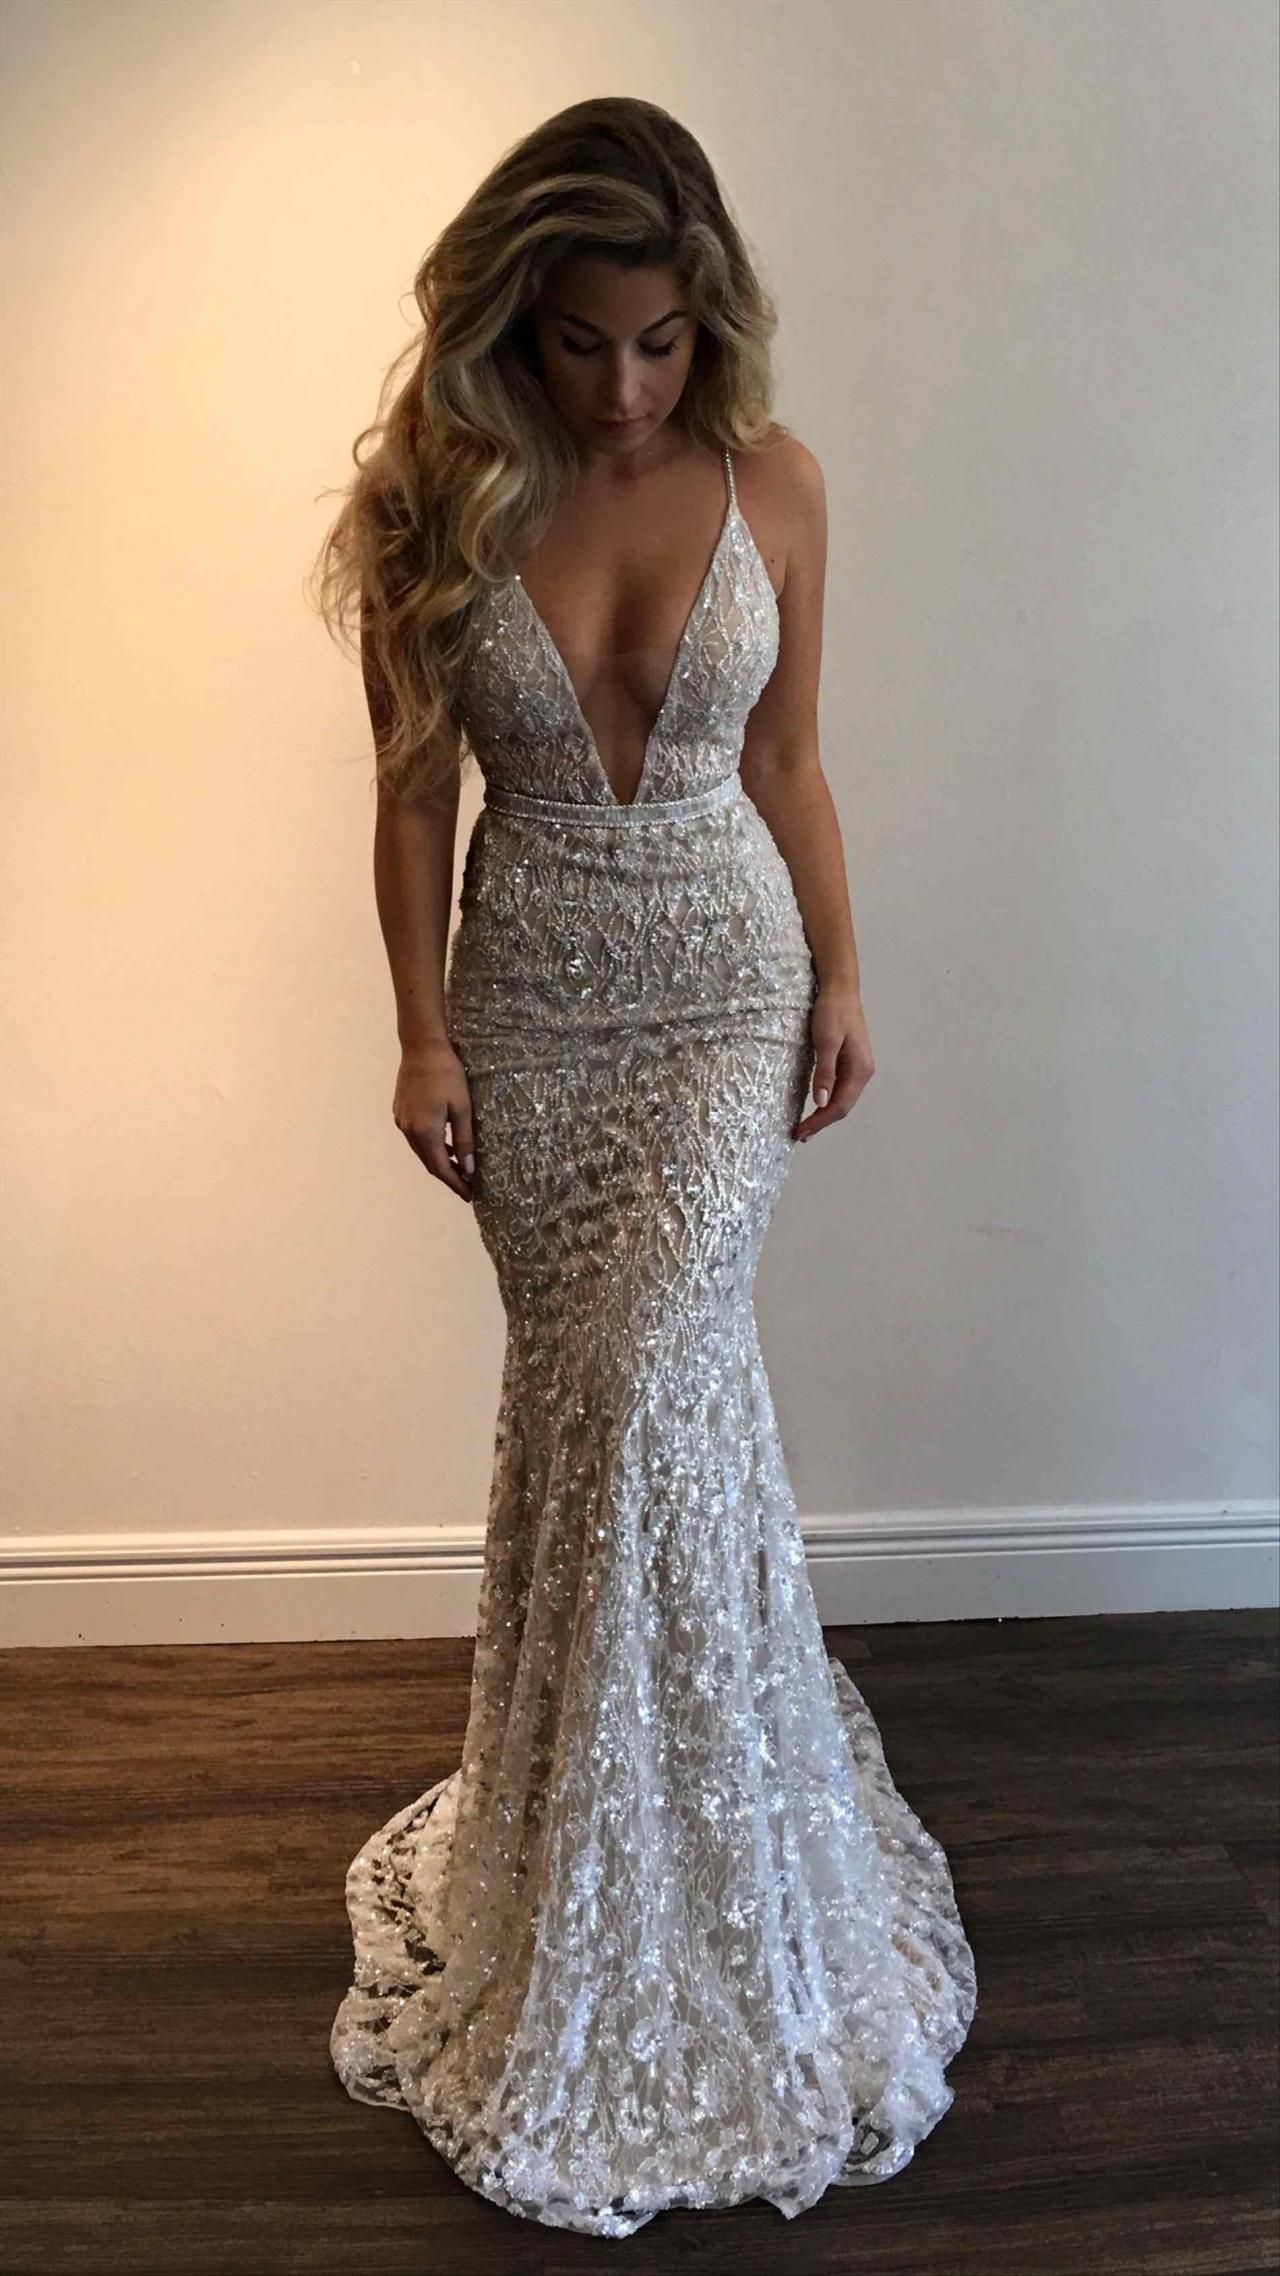 b030a555f11 Unique Shining Beaded Prom Dress